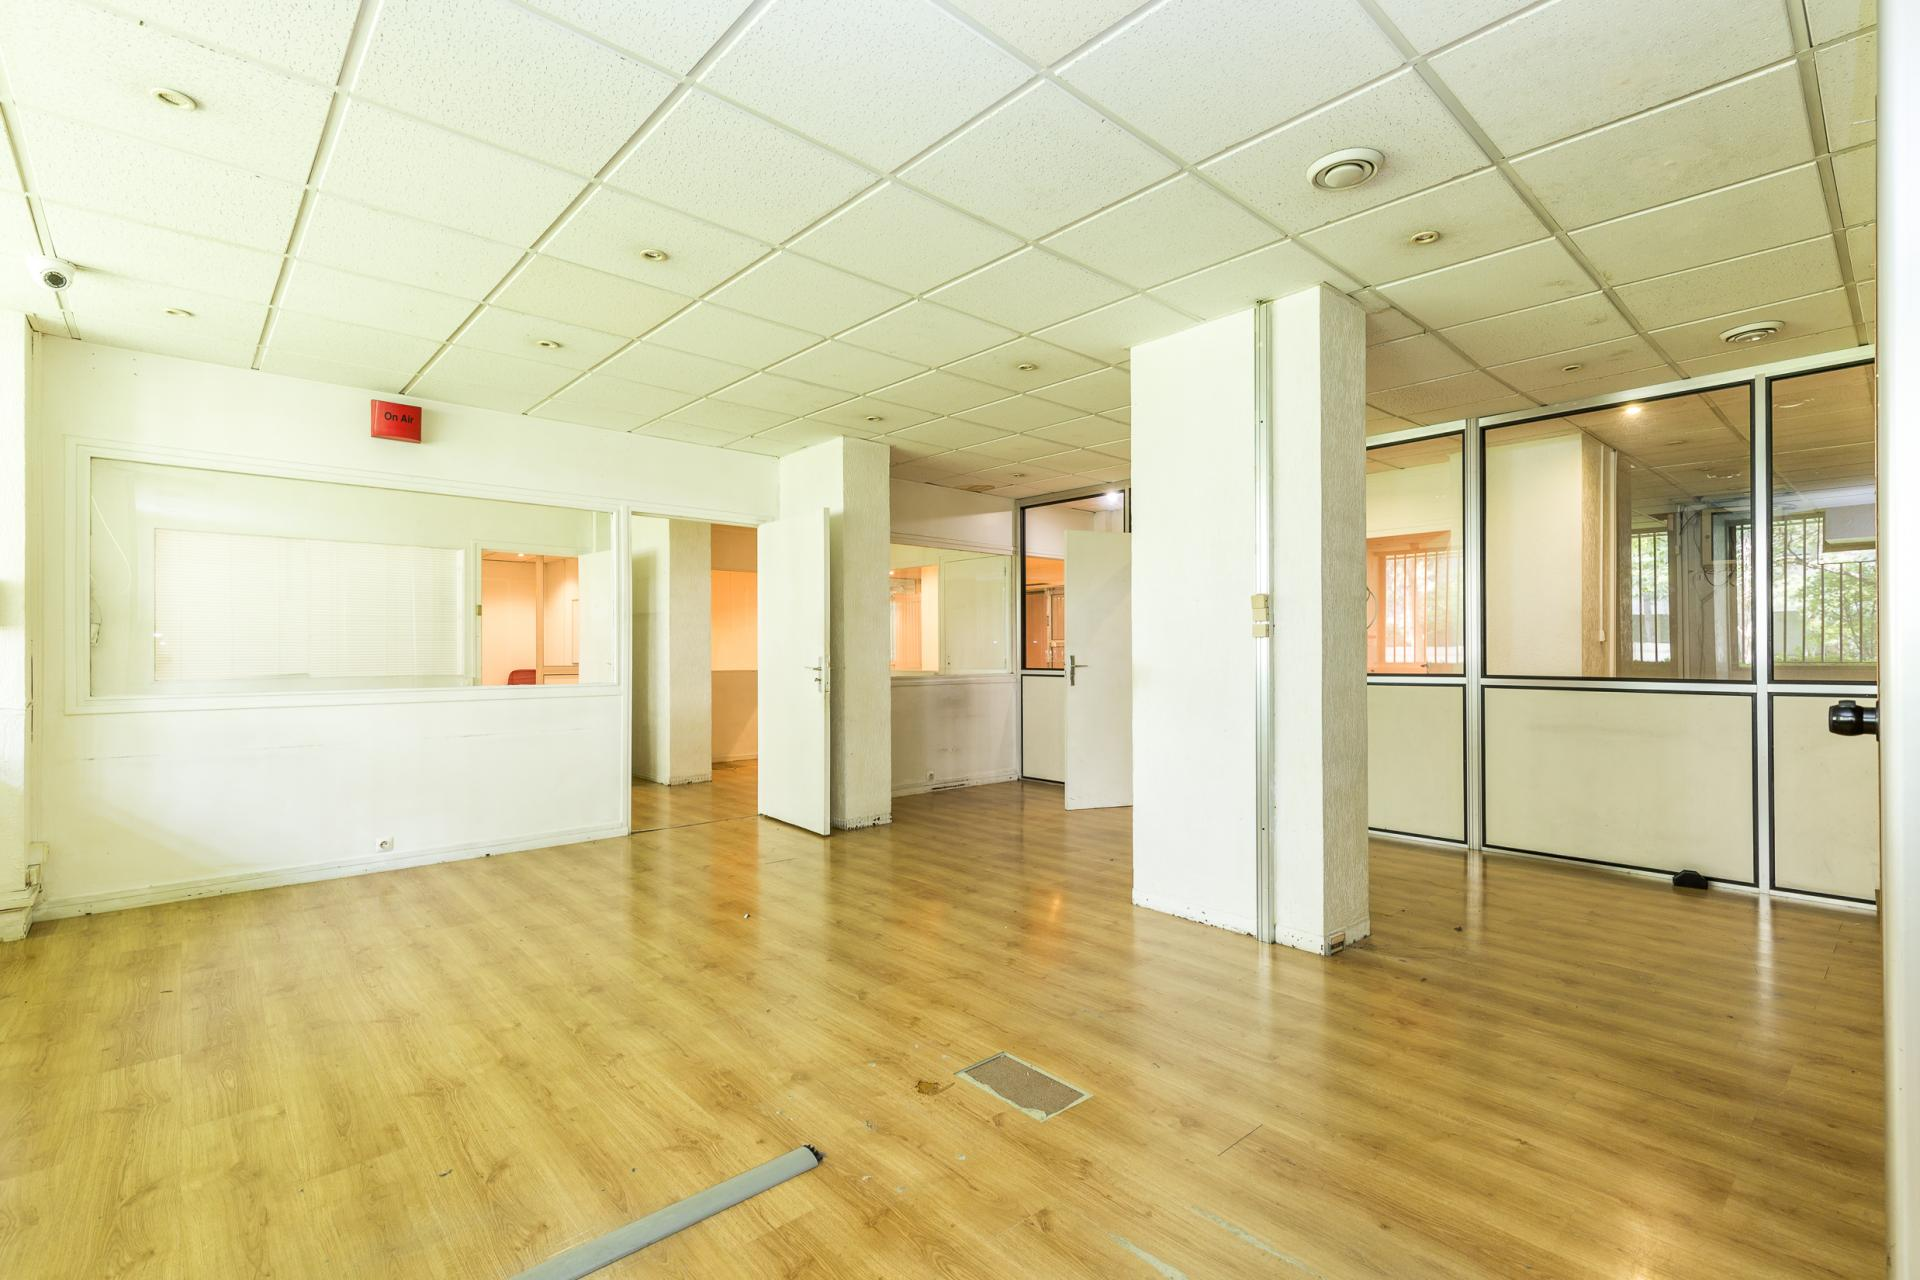 PARIS 11EME - BOULEVARD RICHARD LENOIR - LOCAL COMMERCIAL 536M2